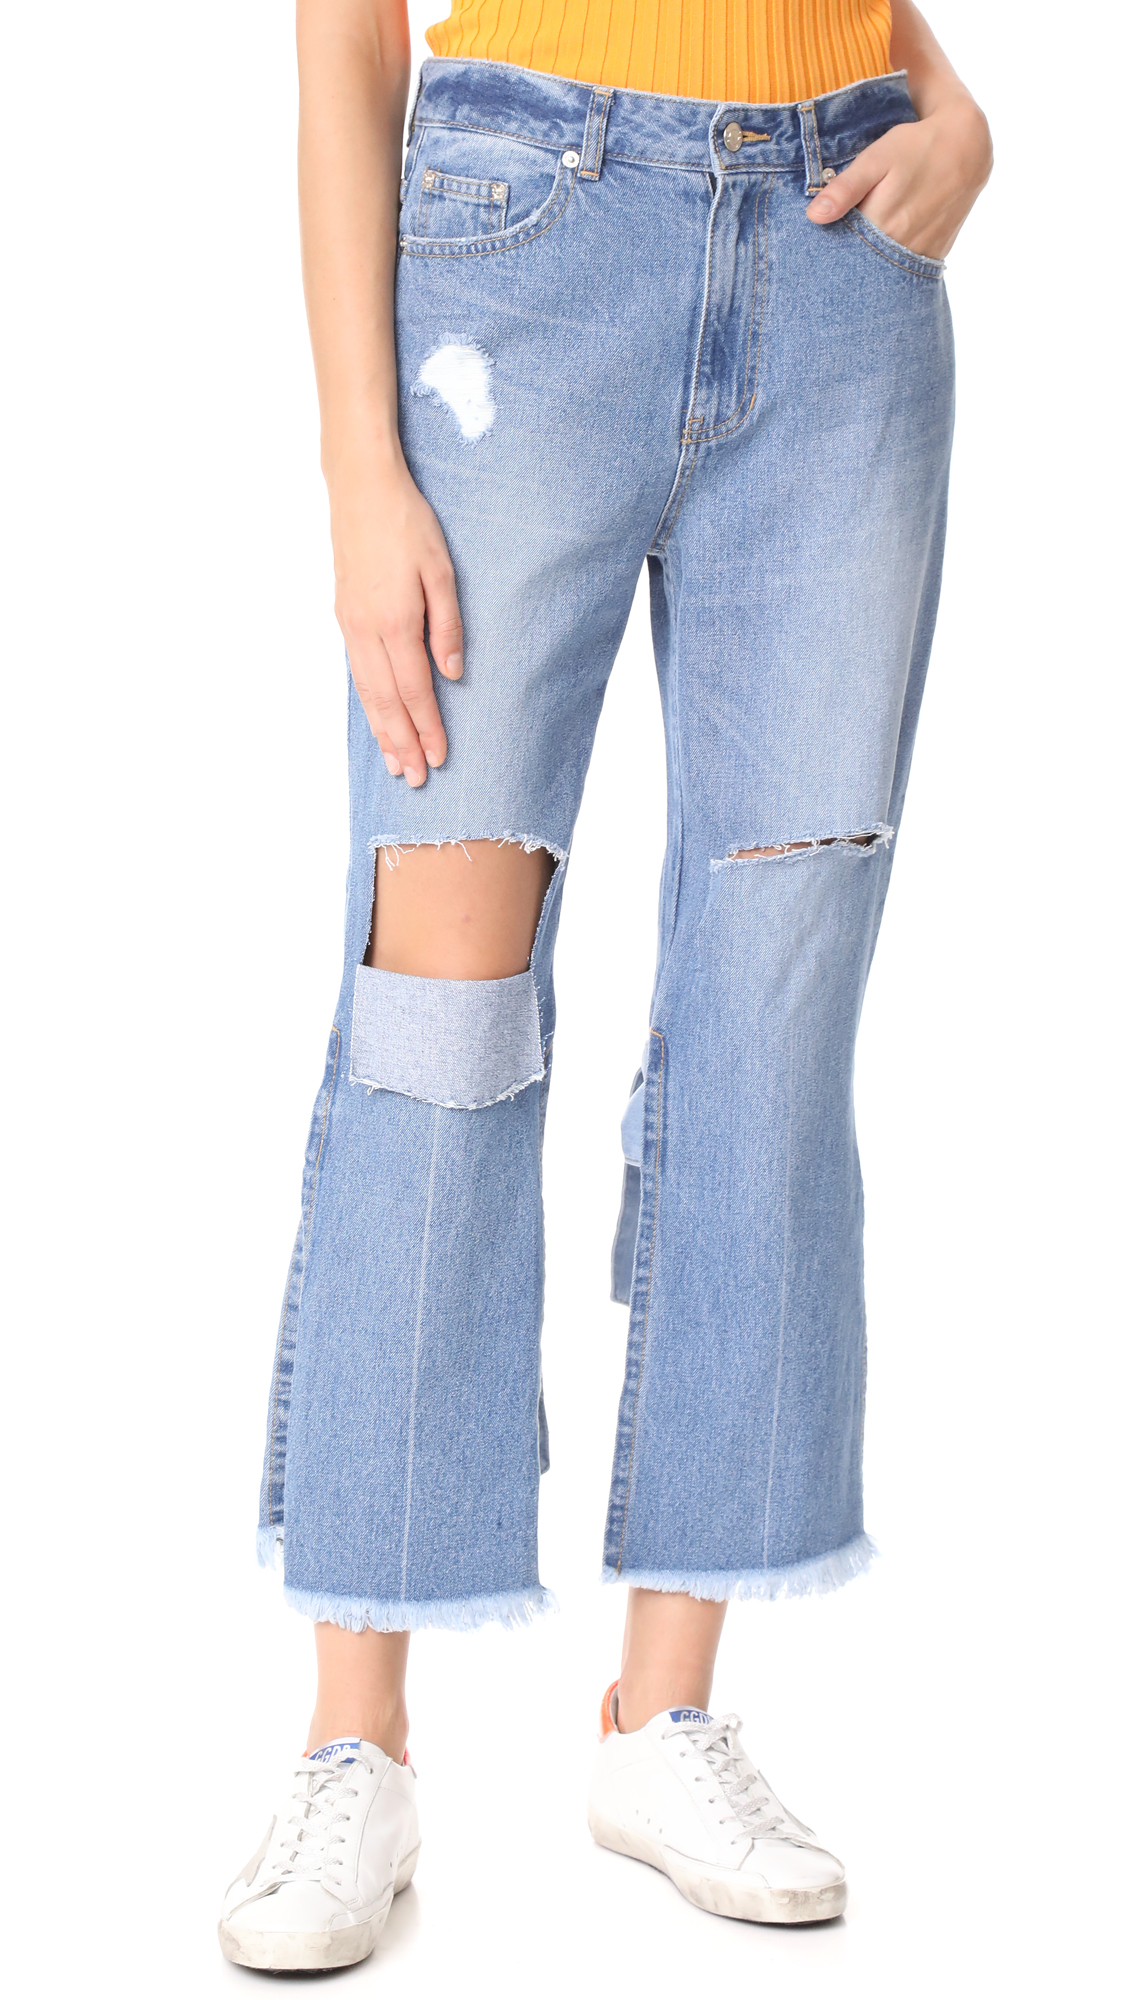 SJYP Back Strap Detail Jeans - Denim Blue